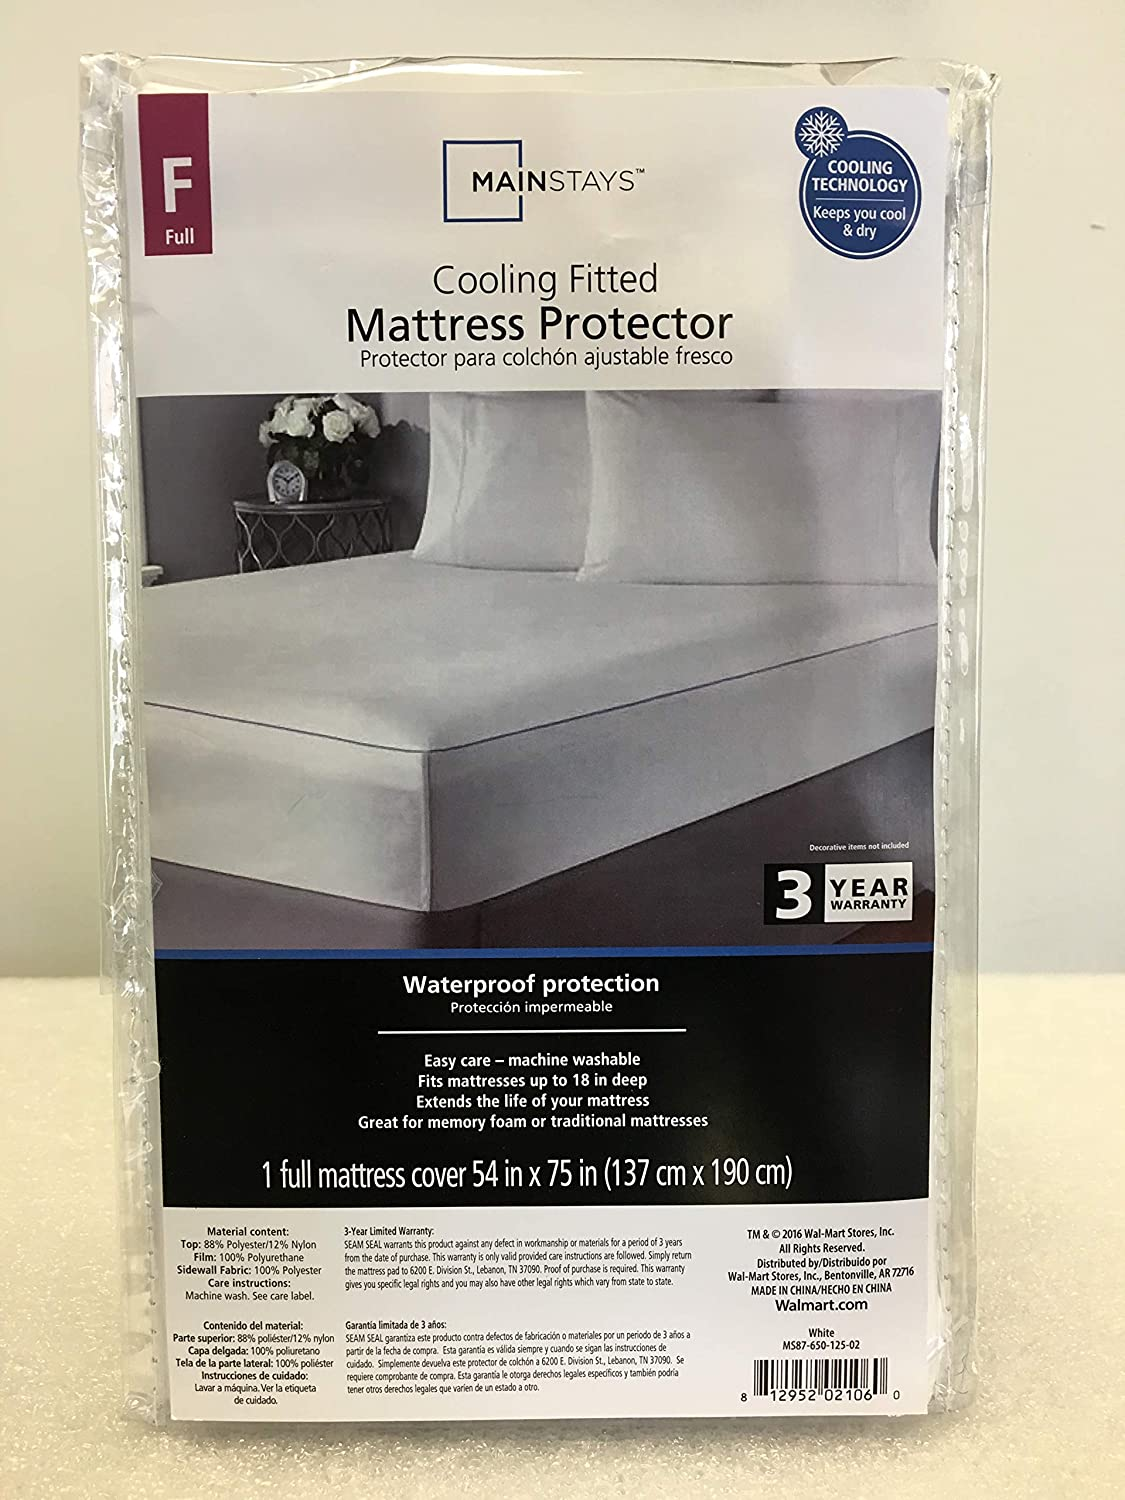 Mainstay Cooling Fitted Mattress Protector Full